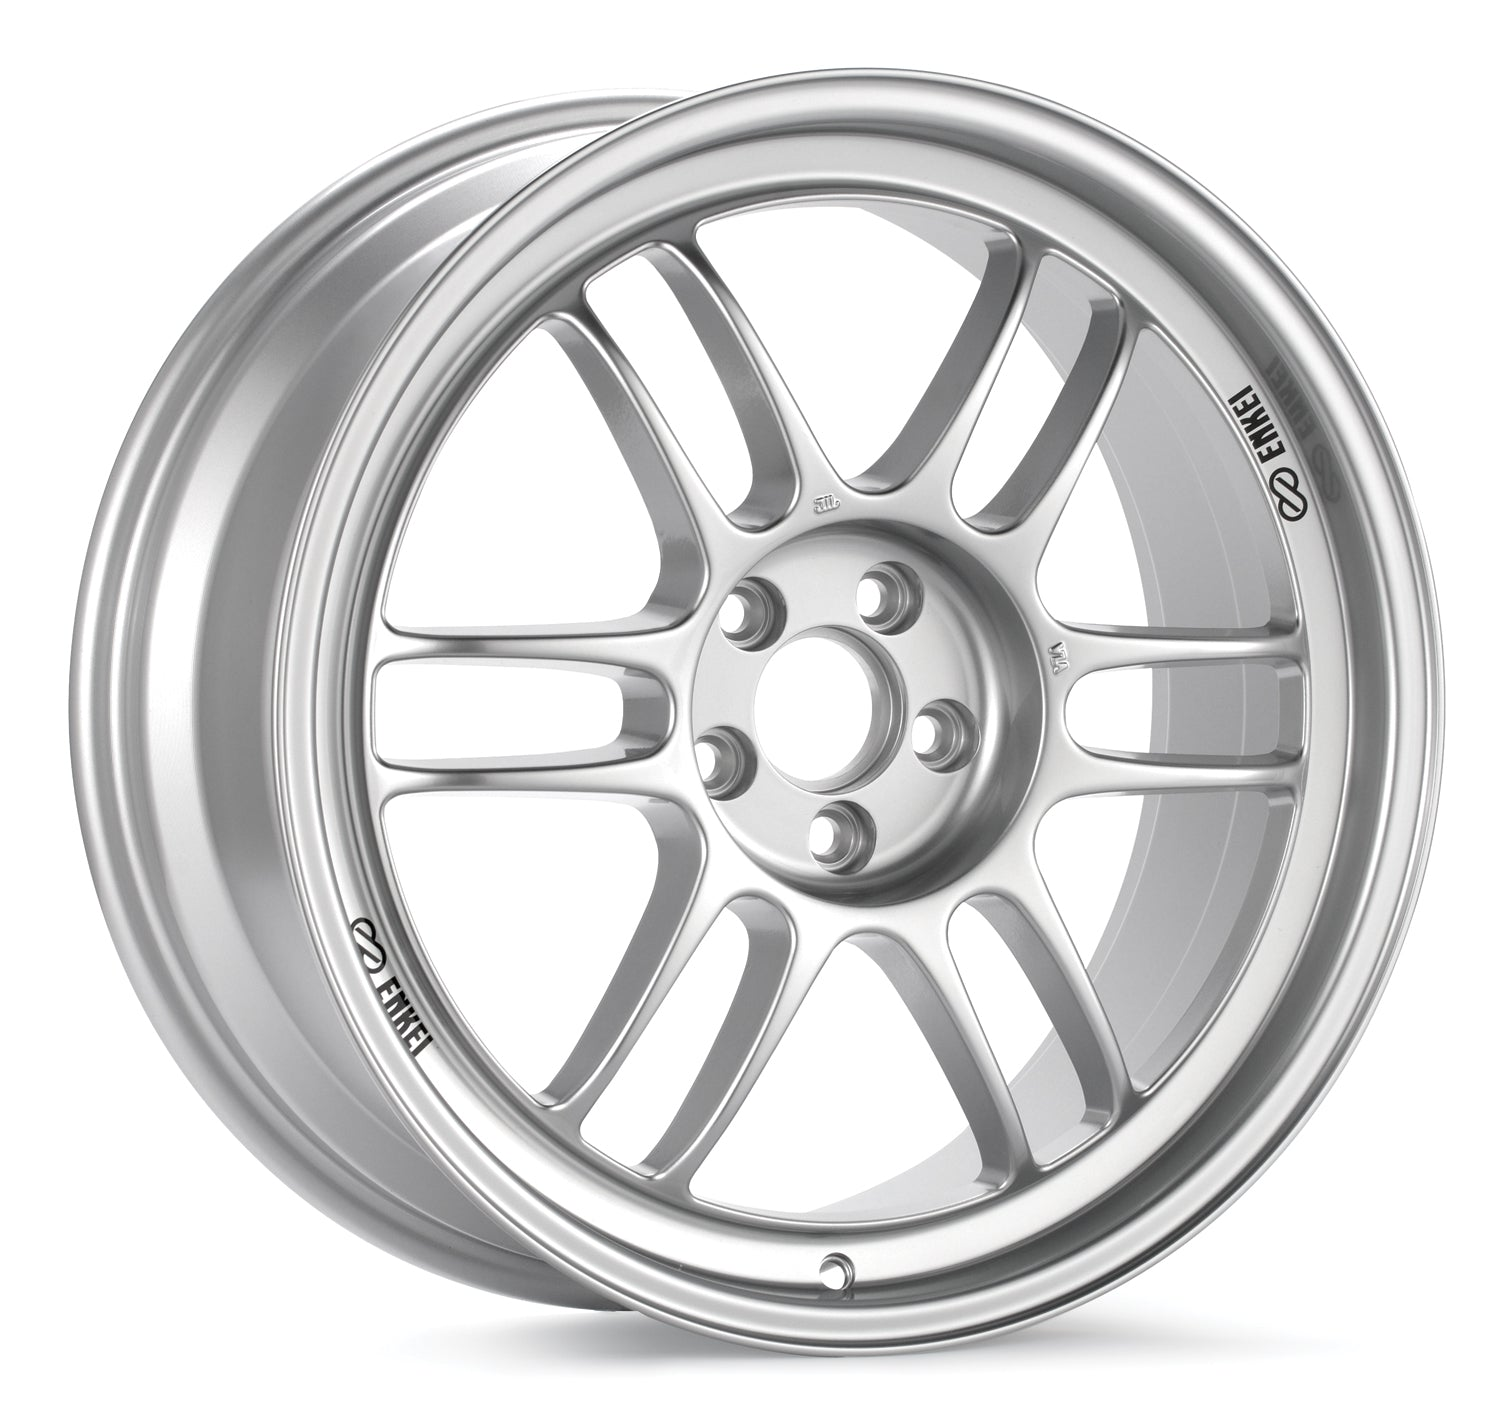 Enkei RPF1 17x7 43mm Offset 4x100 73mm Bore Silver Wheel